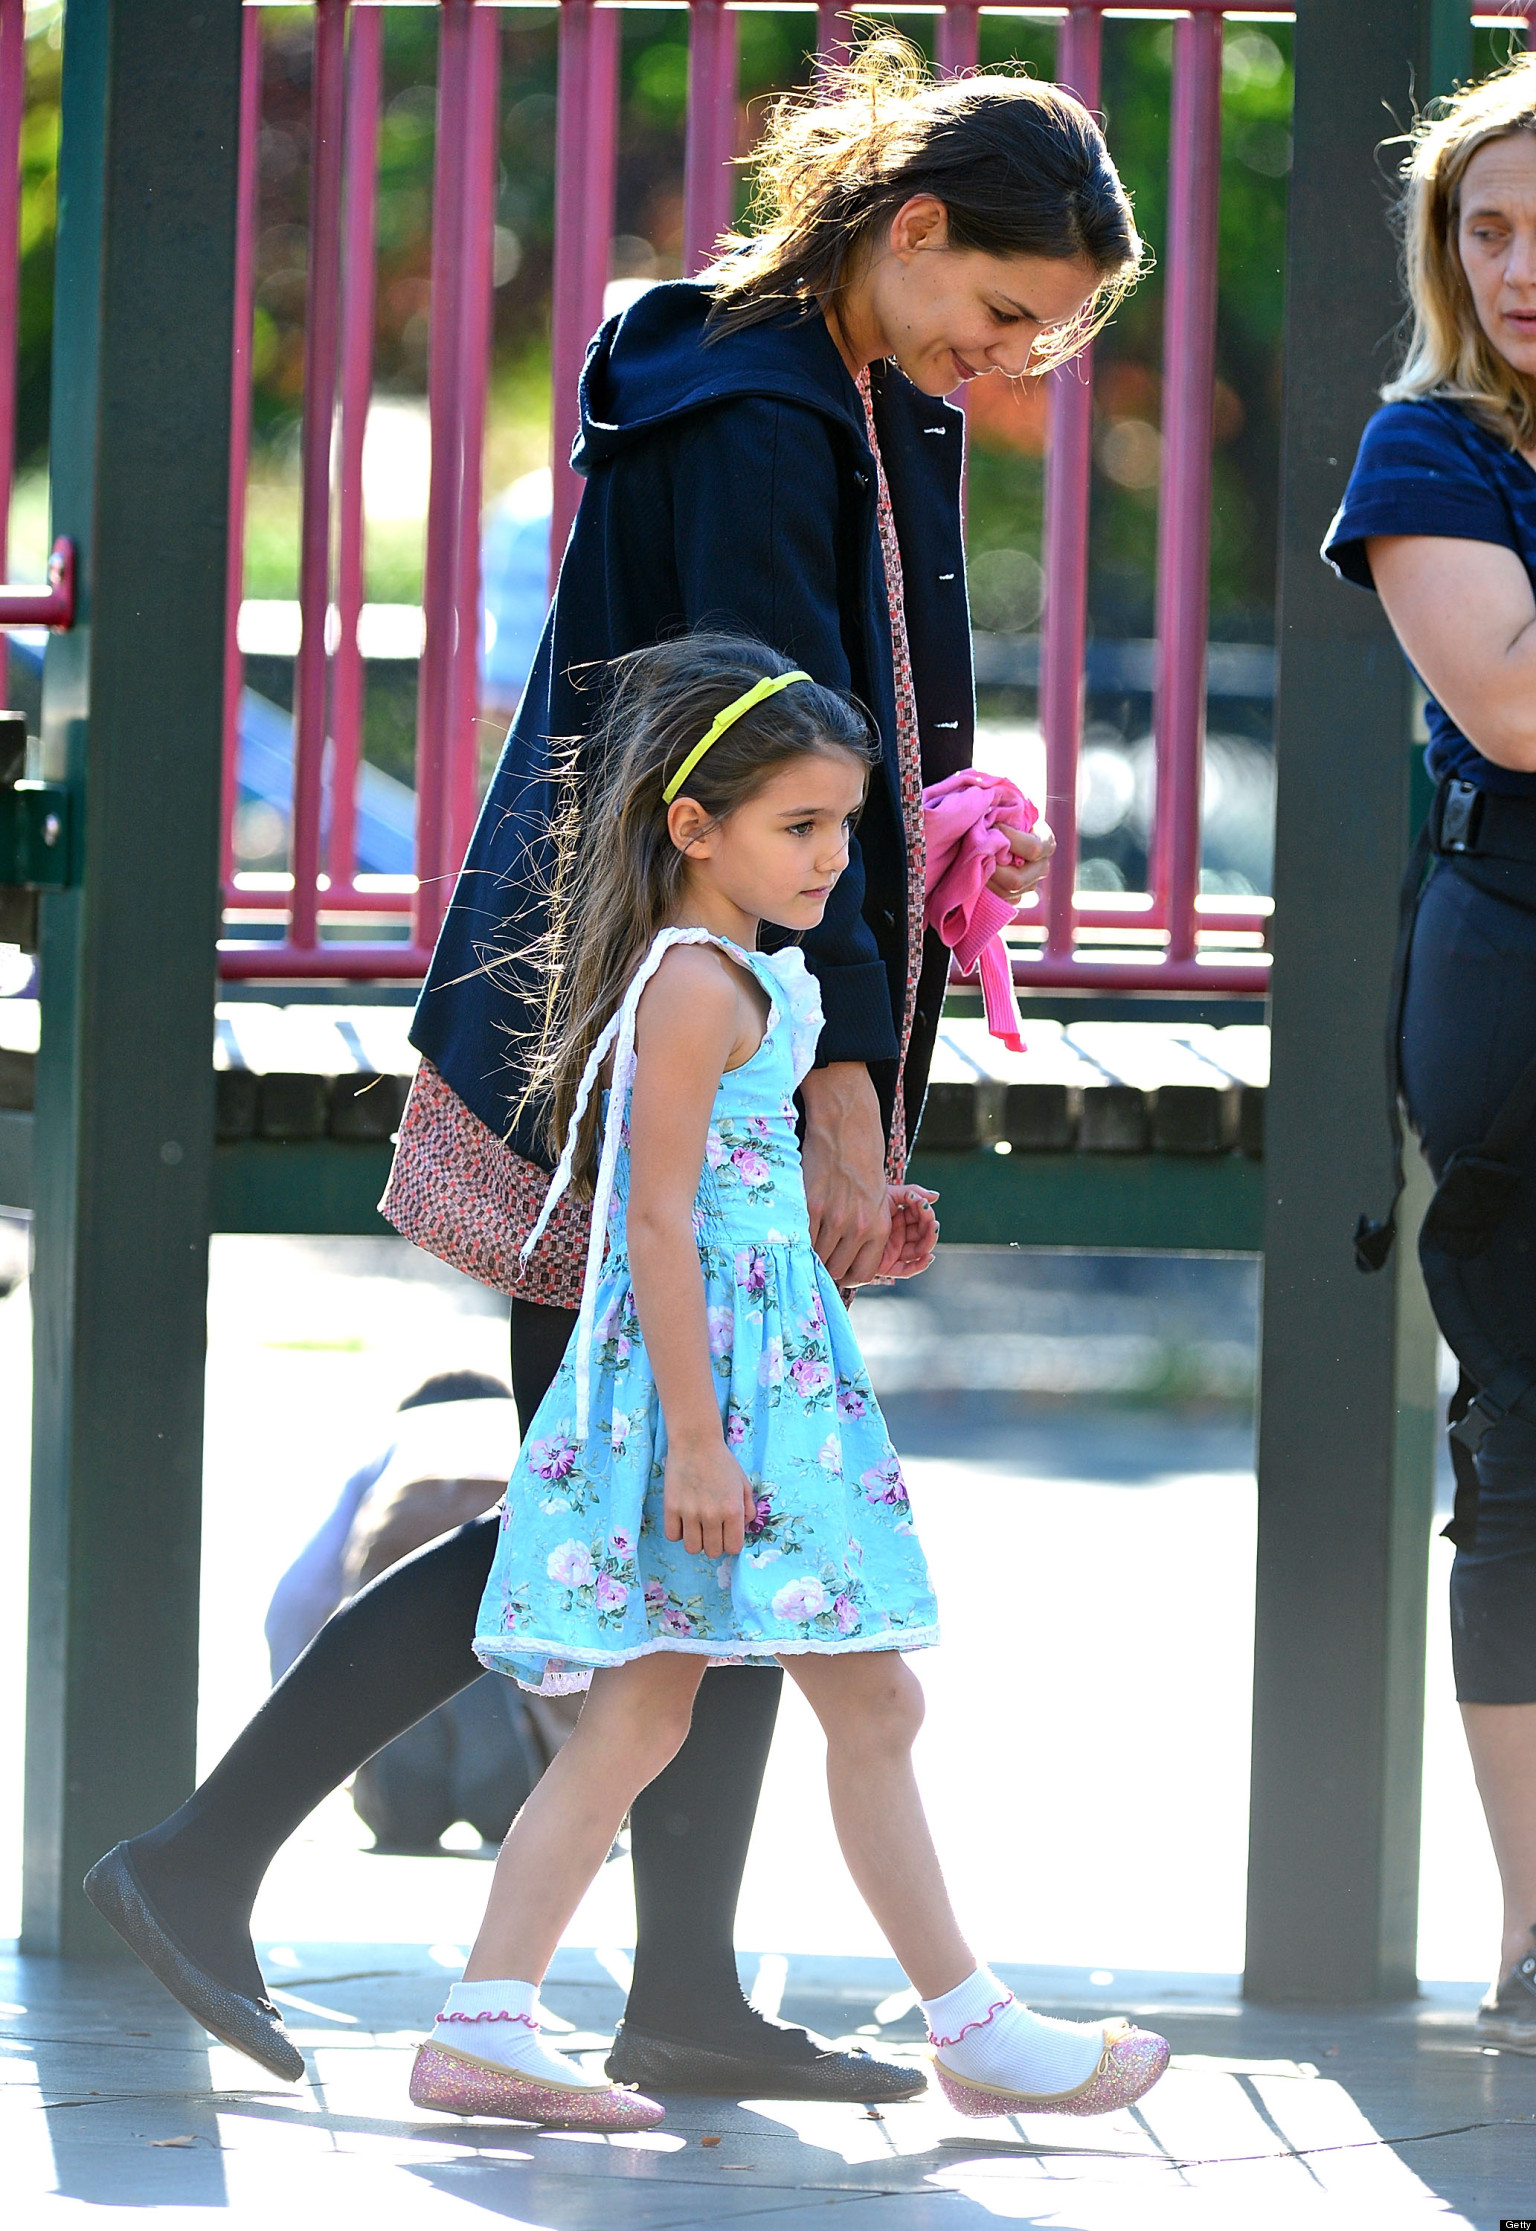 Suri Cruise School, Avenues, Slows New York Traffic With